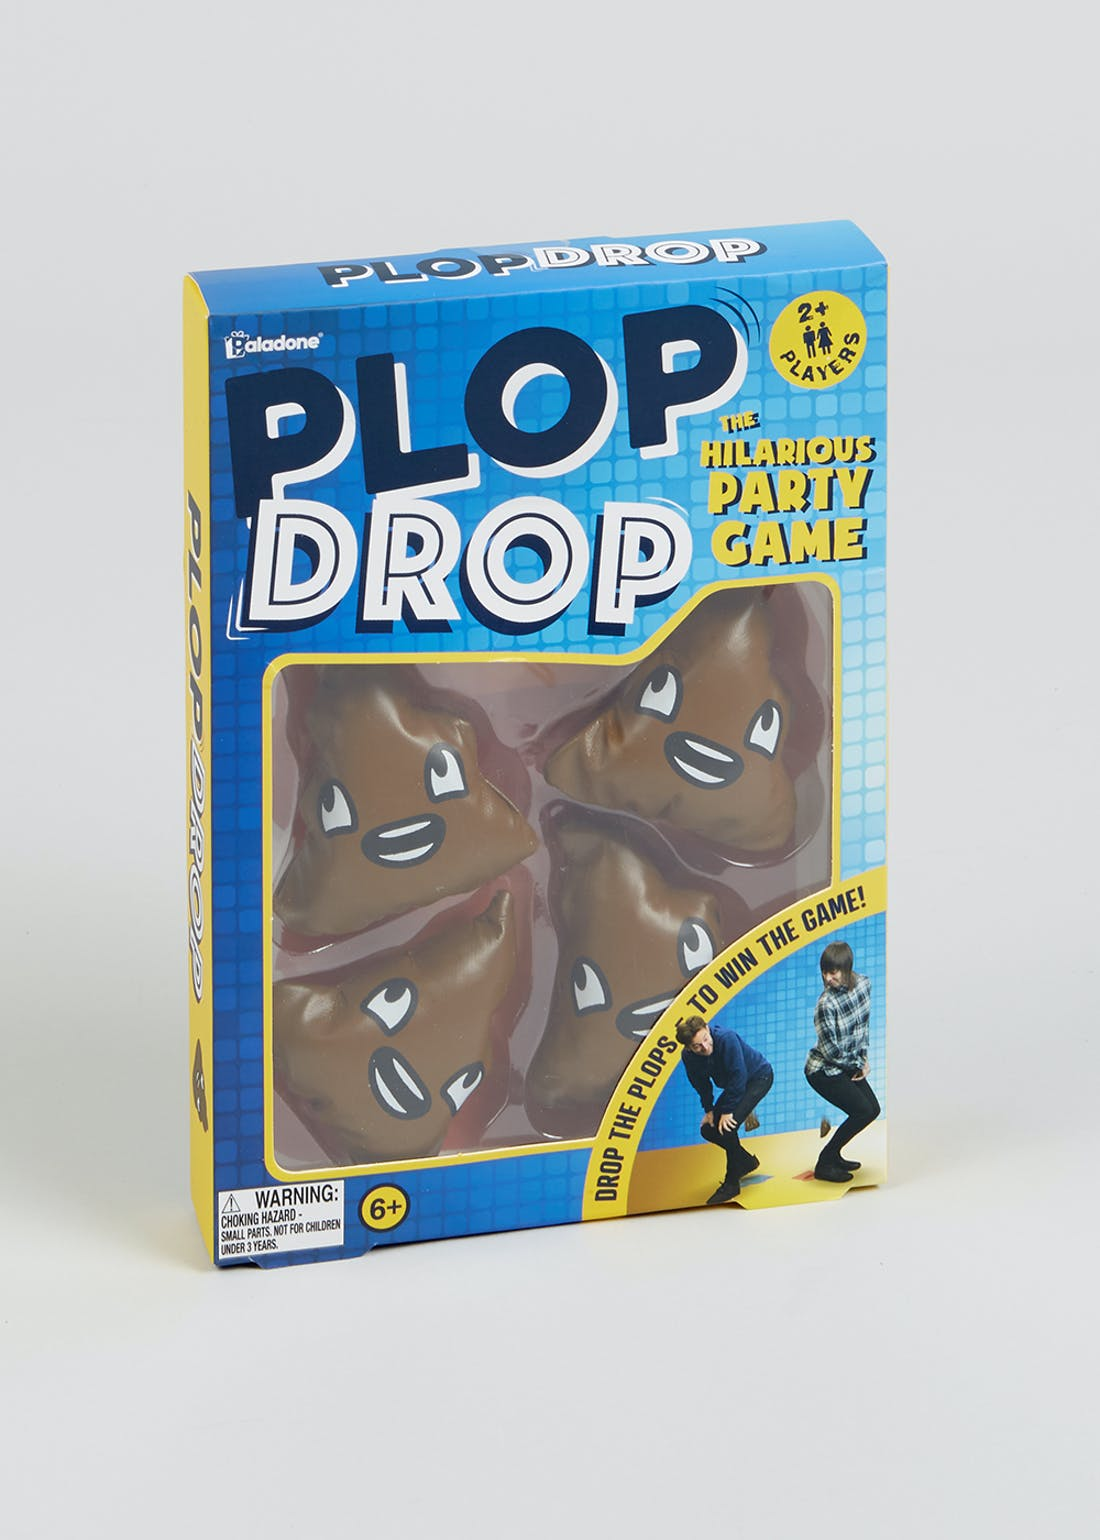 Plop Drop Party Game (22cm x 16cm x 3cm)